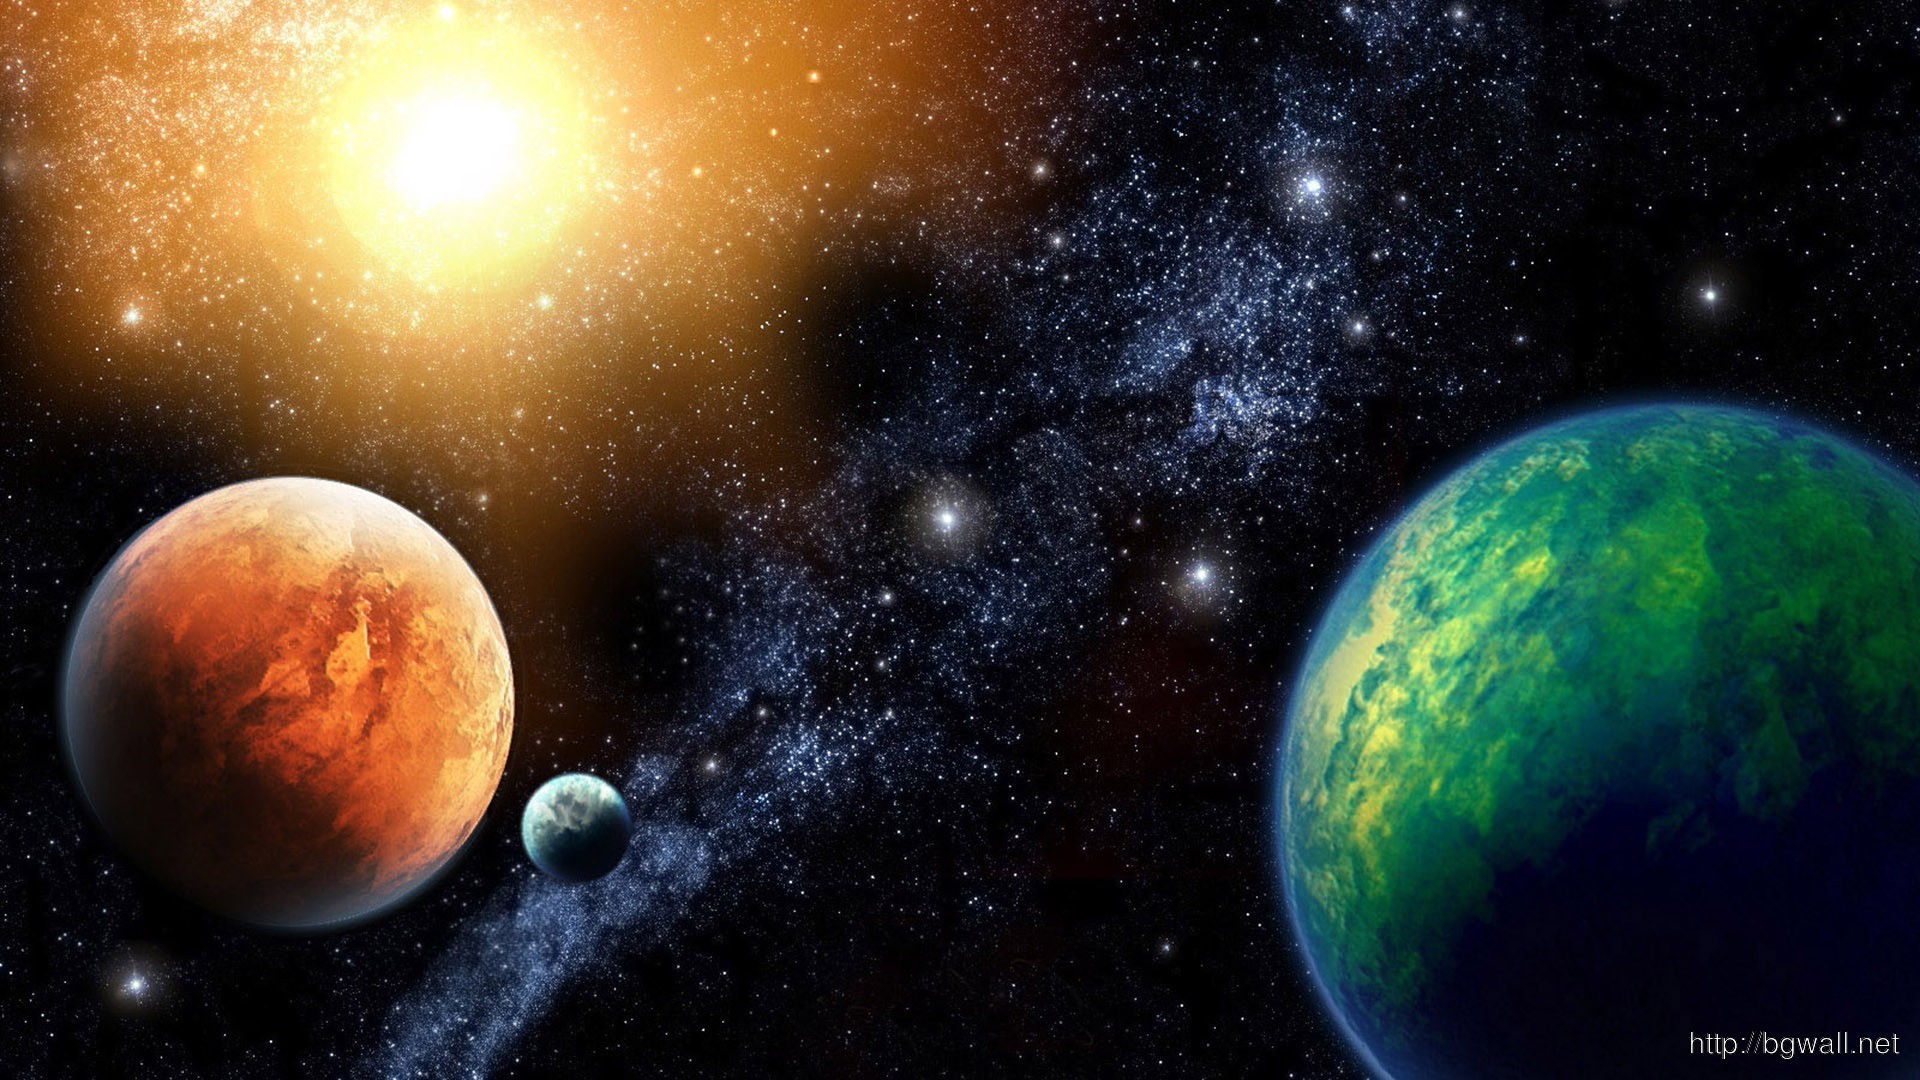 Colorful Planets Wallpaper 3197 Full Size